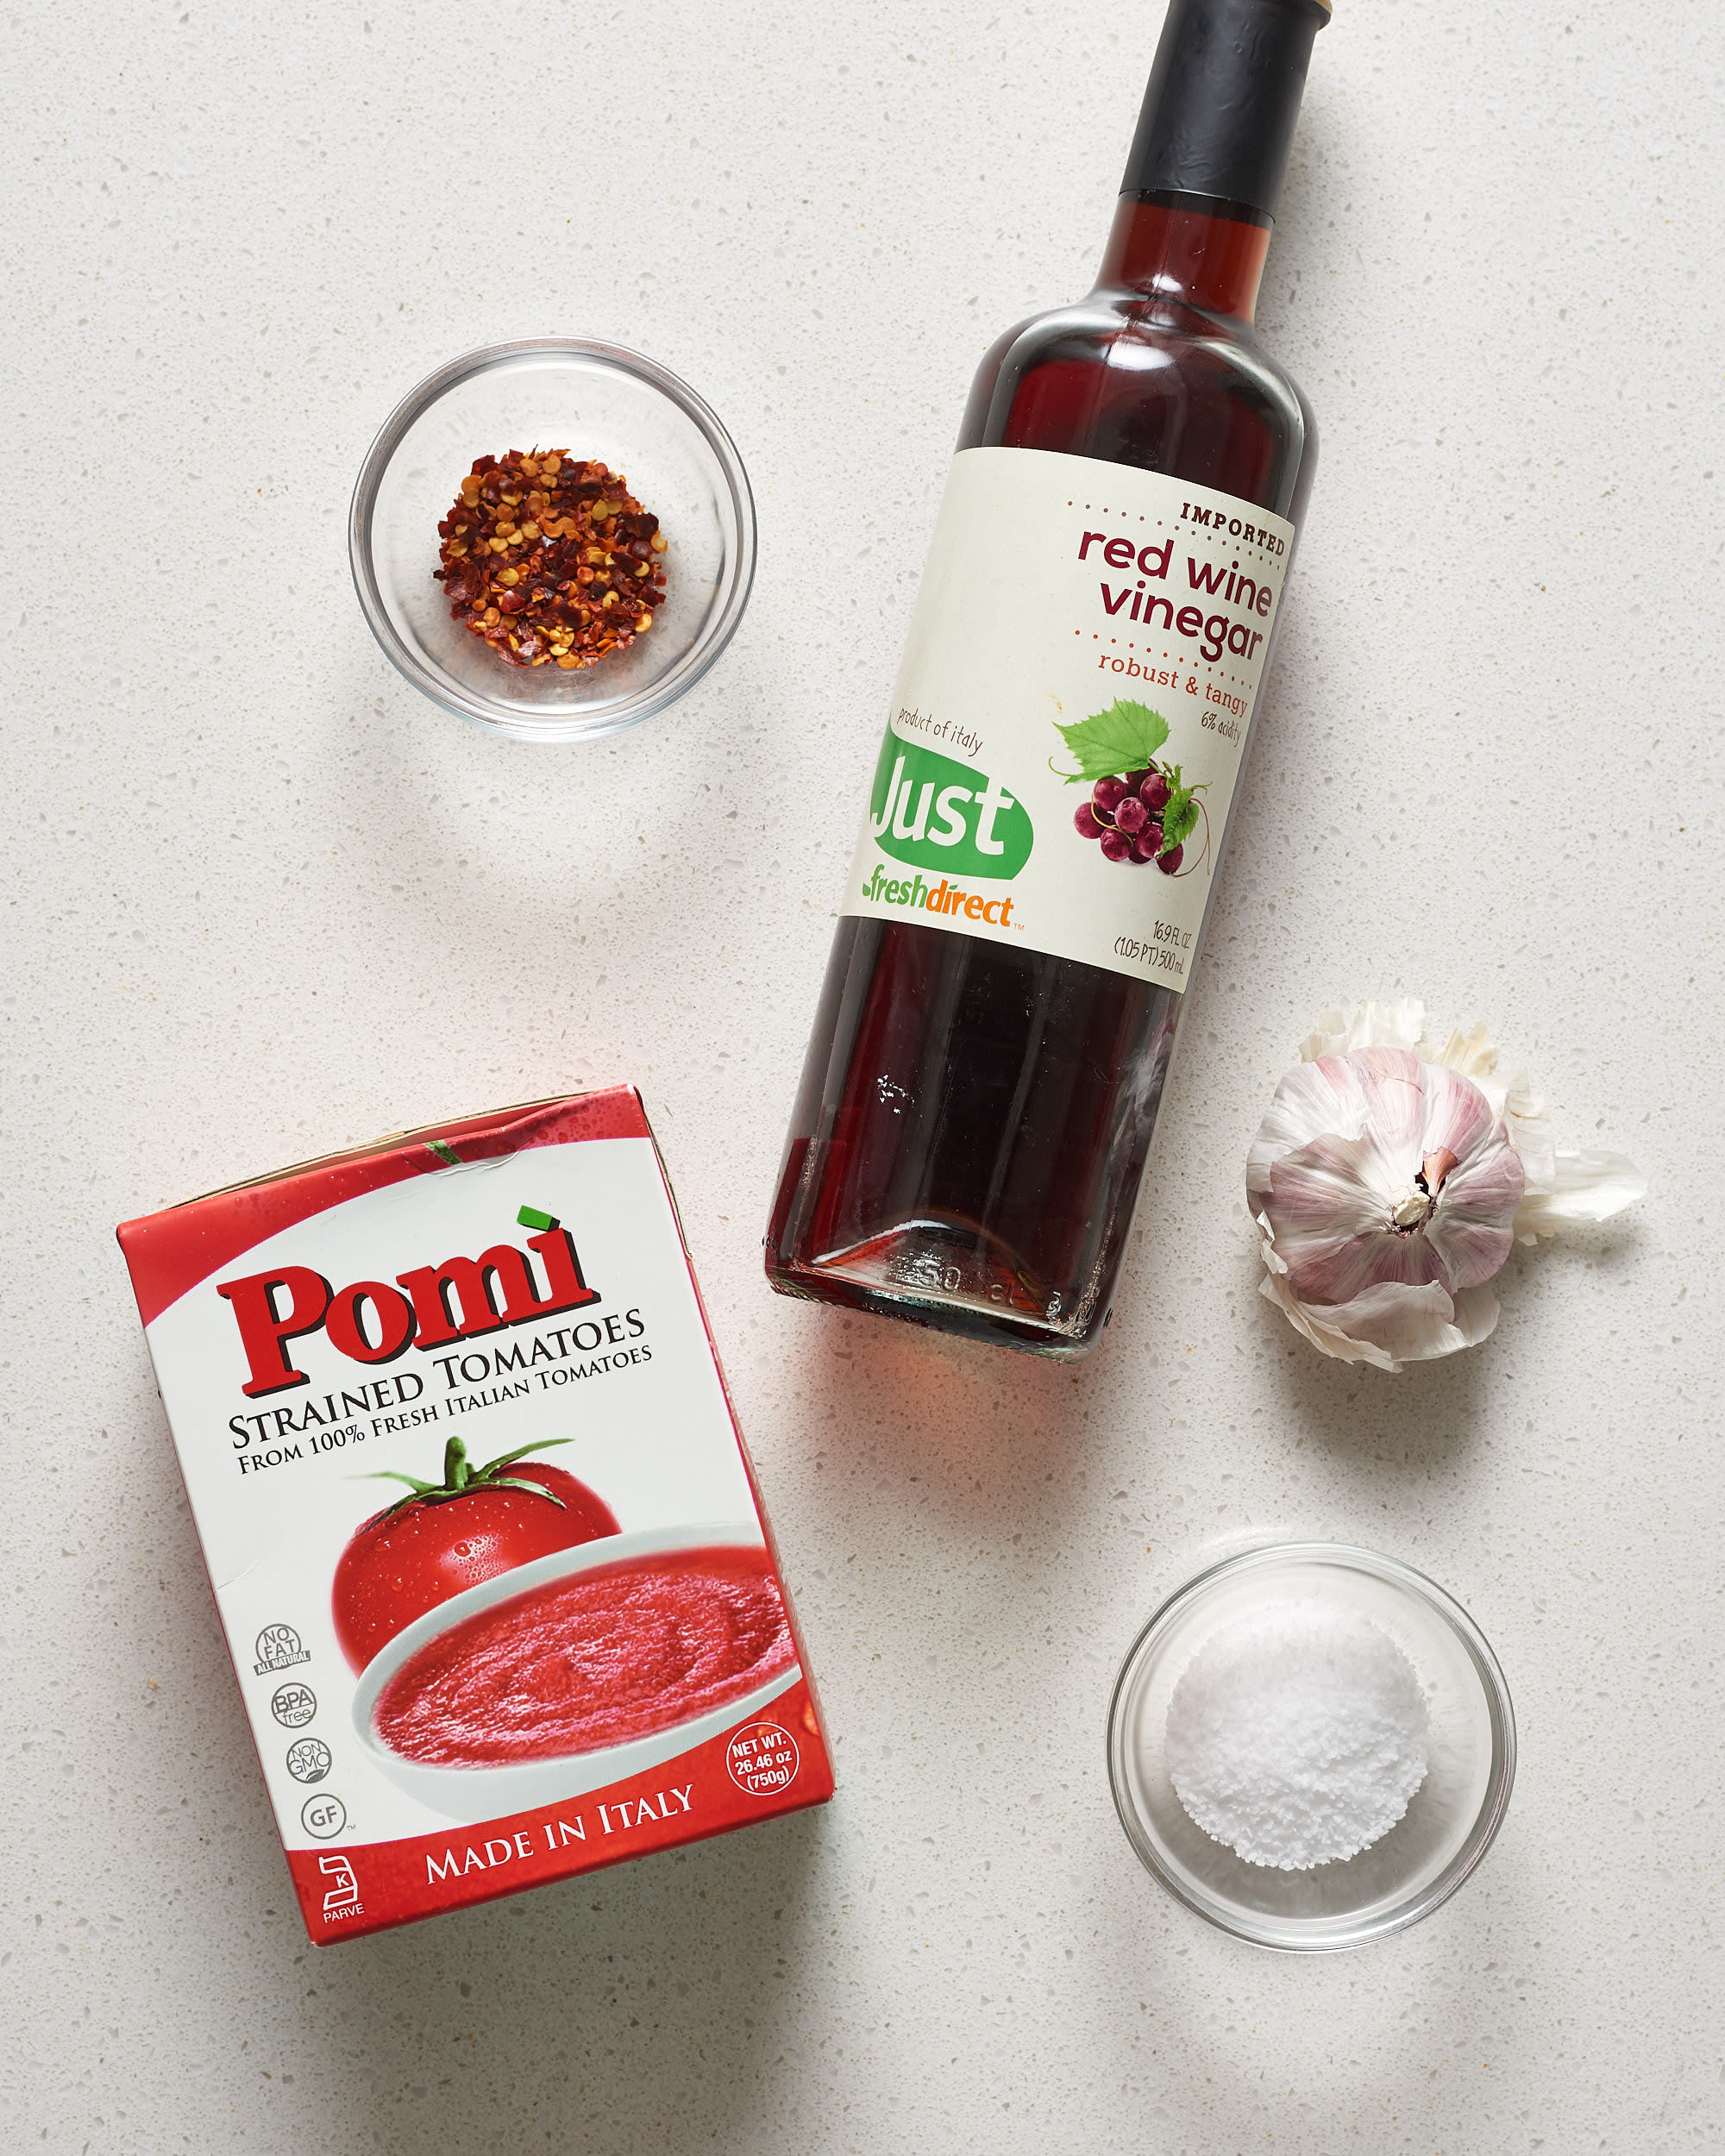 What Is Tomato Passata, and How Should I Use It?